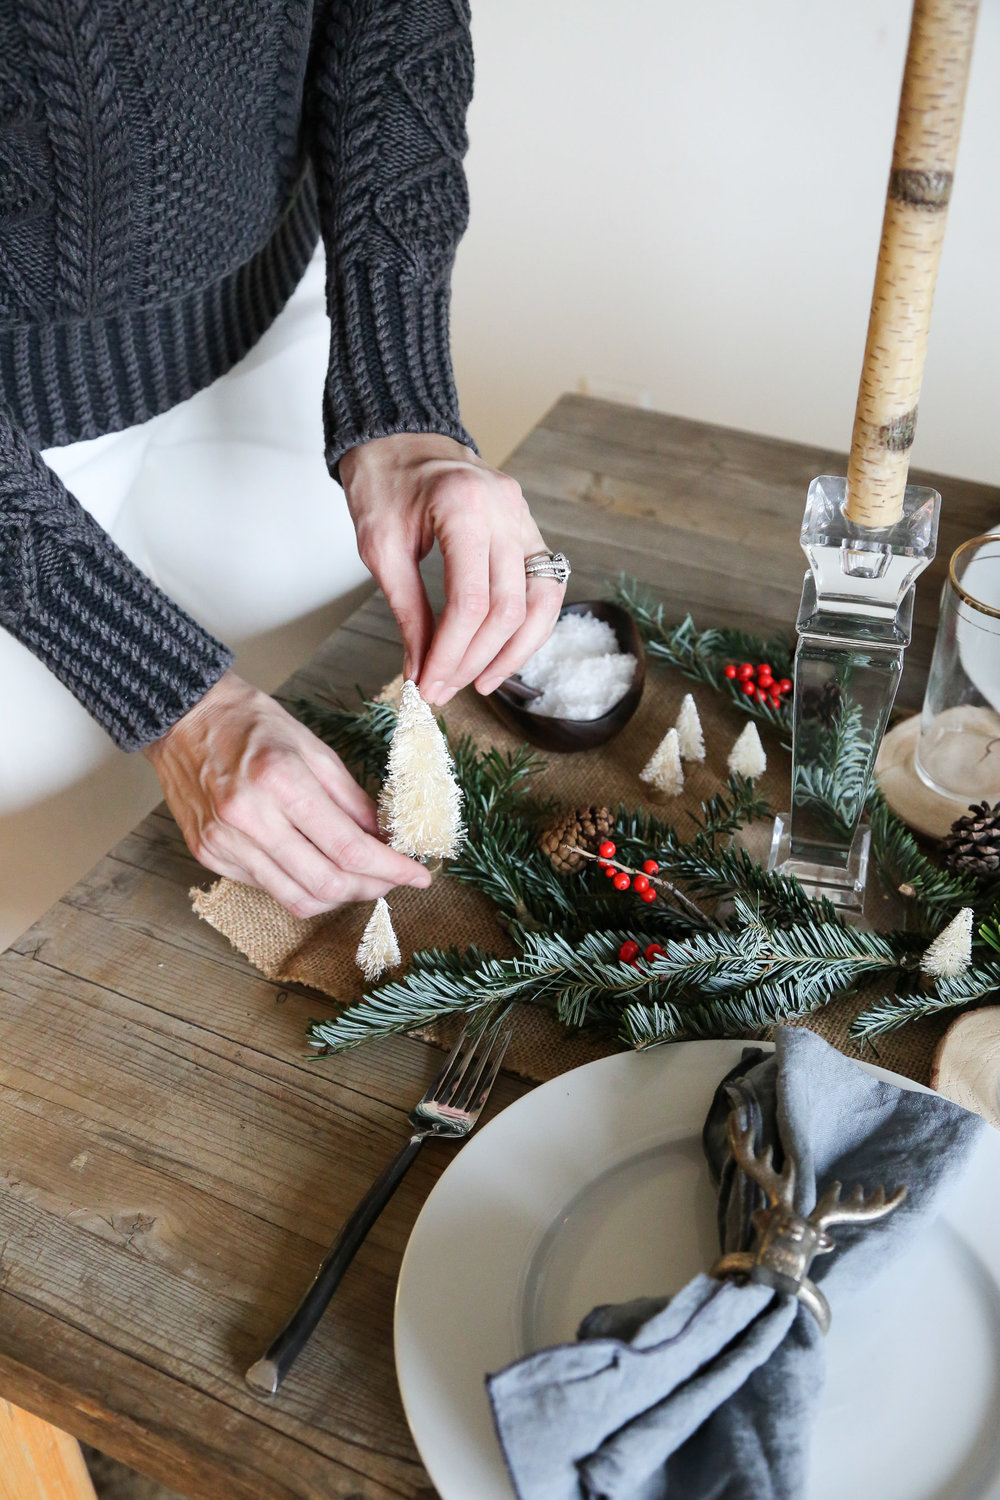 How-to-create-a-rustic-cozy-winter-woods-tablescape-for-the-holidays5.jpg